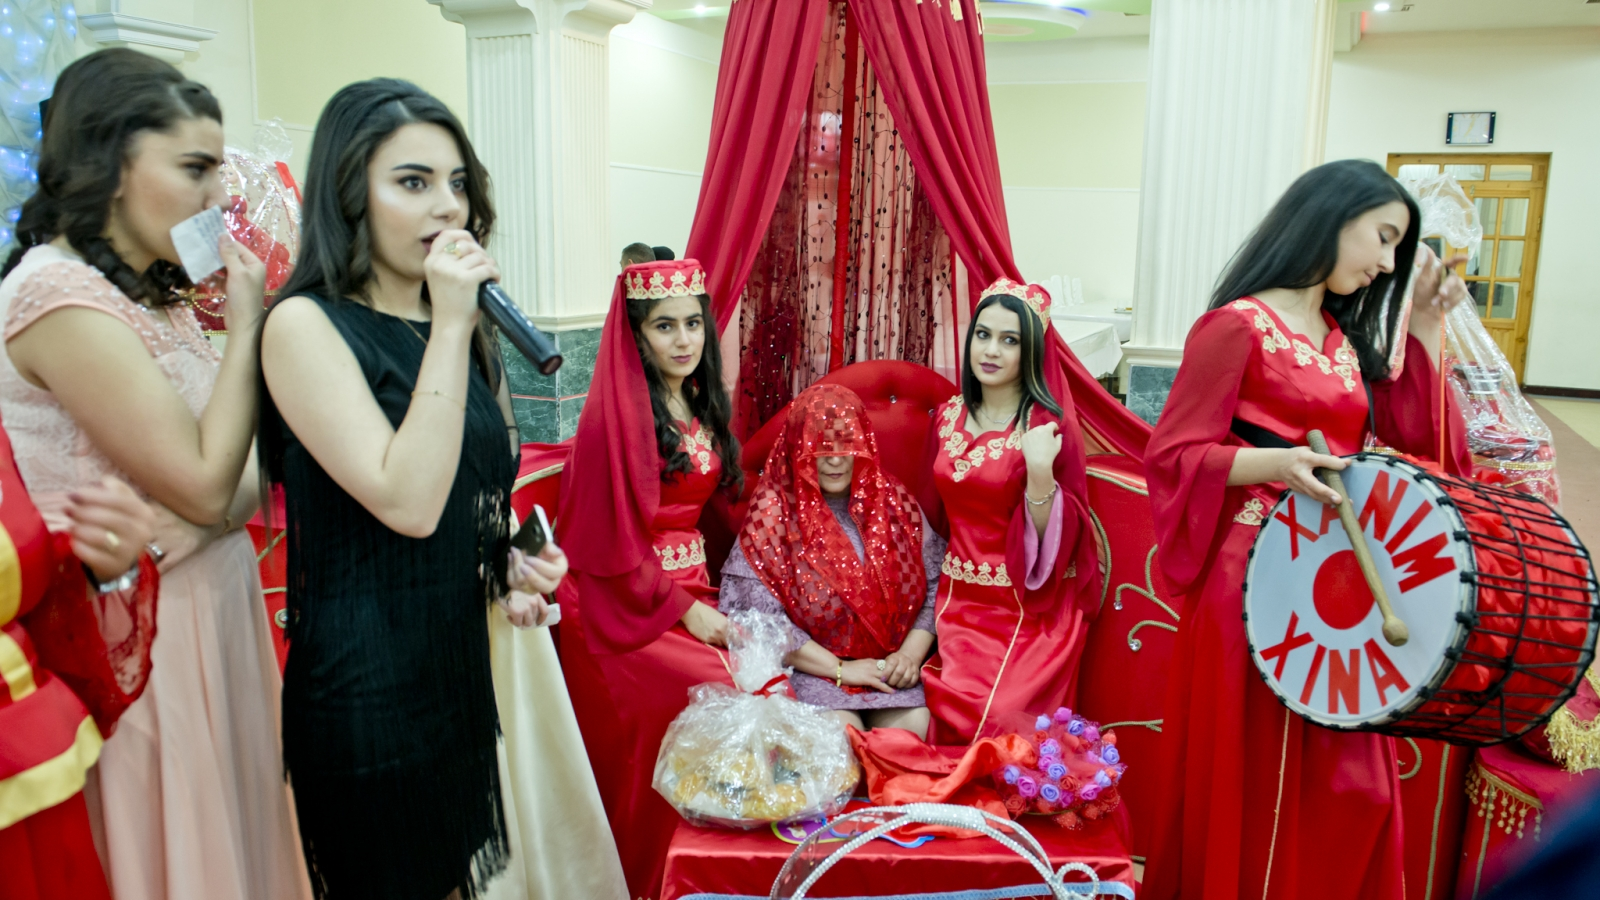 Organising pre-wedding 'Henna Night' ceremonies - is the business Rena Mekhraliyeva set up with the EU support